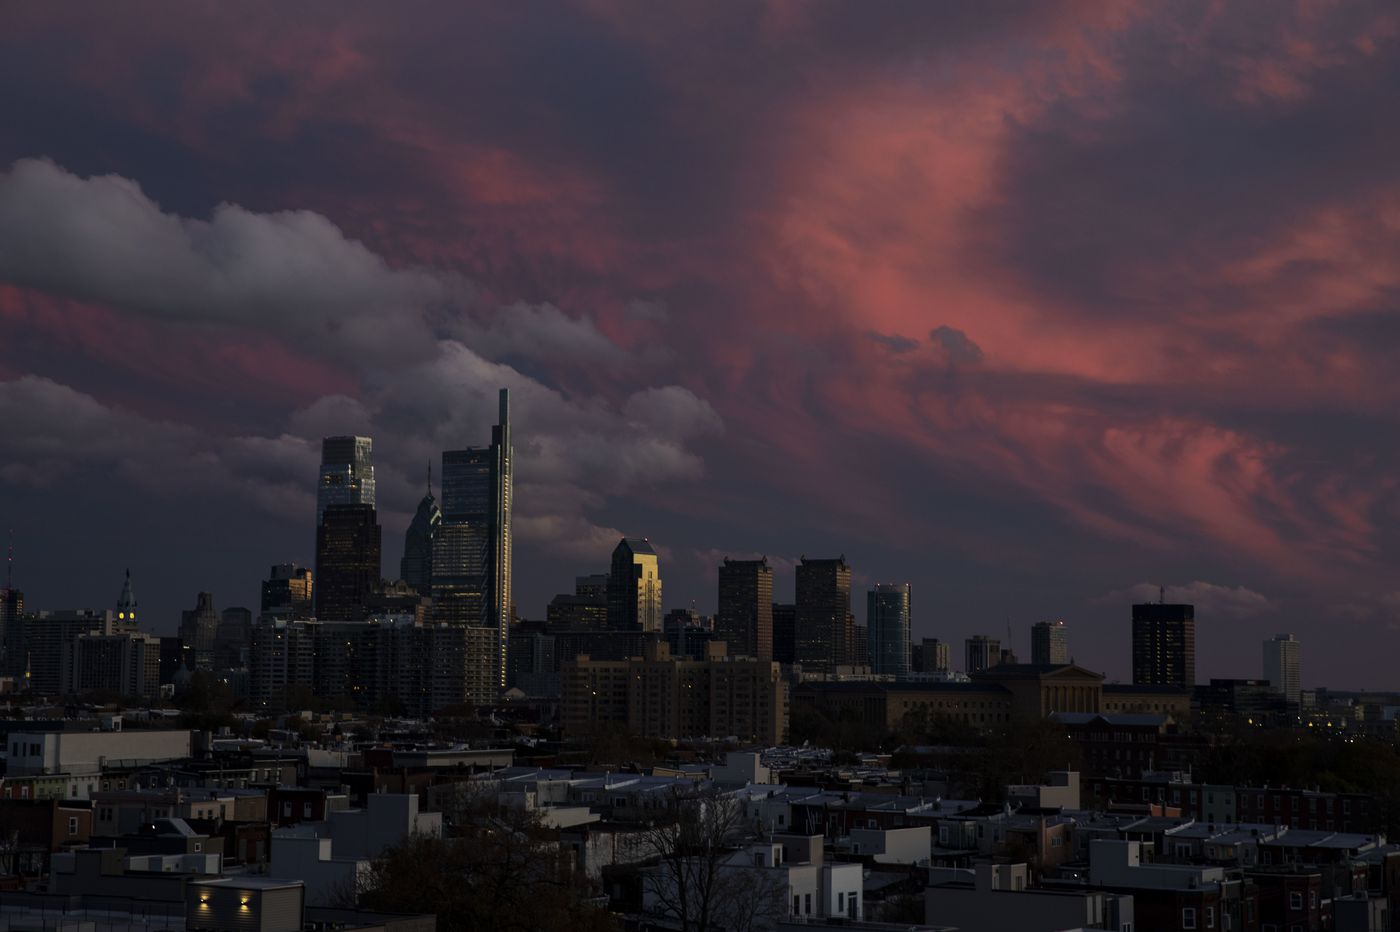 Lifting up Philly's struggling citizens must be a priority in the year ahead | Editorial